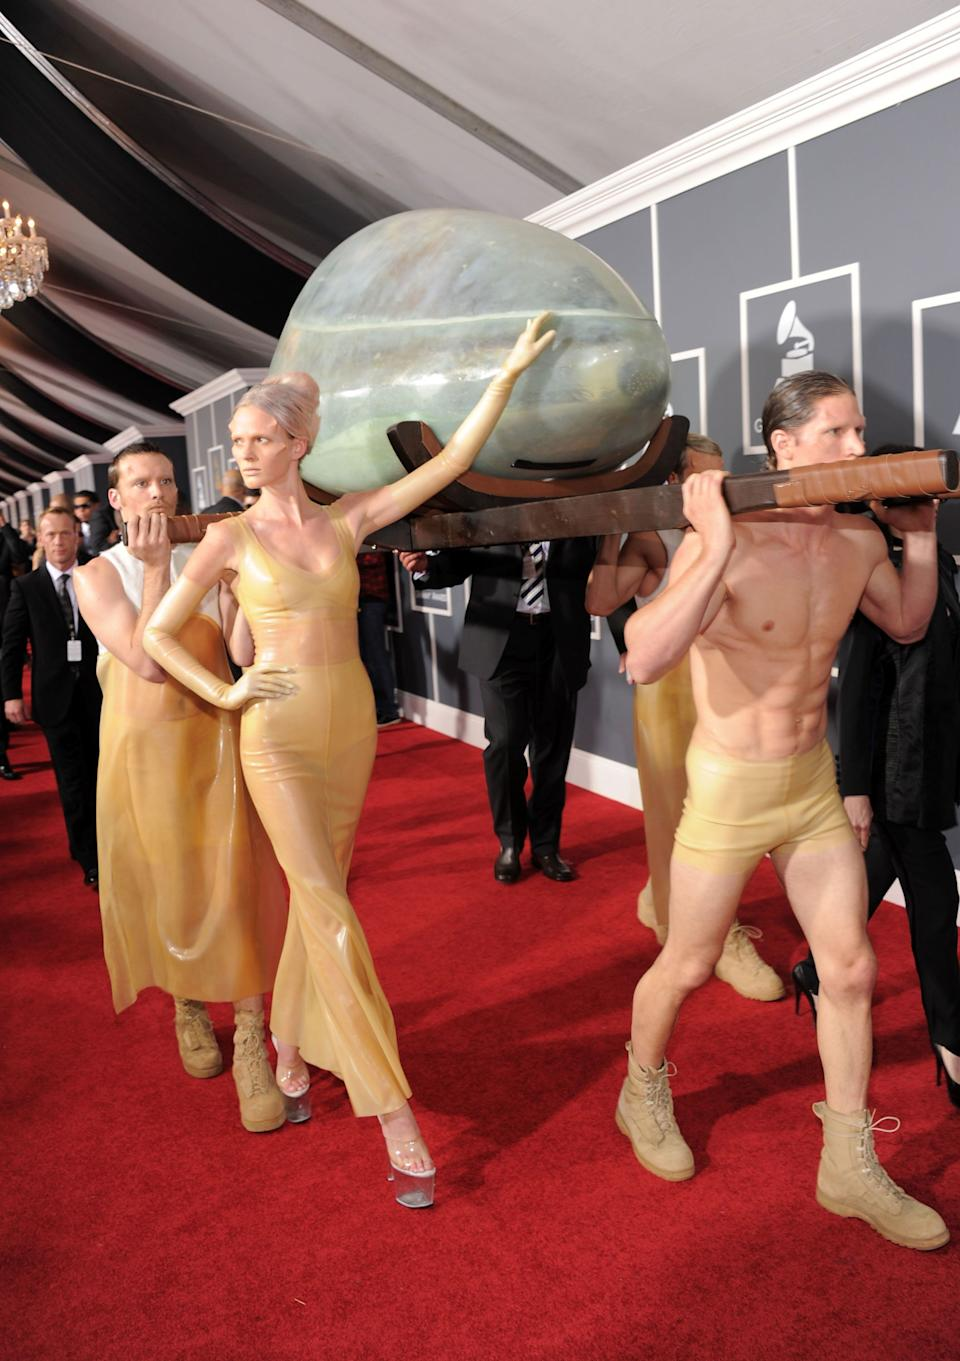 Lady Gaga arrives on the red carpet at the 2011 Grammy Awards in an egg carried by a group of latex-clad helpers.